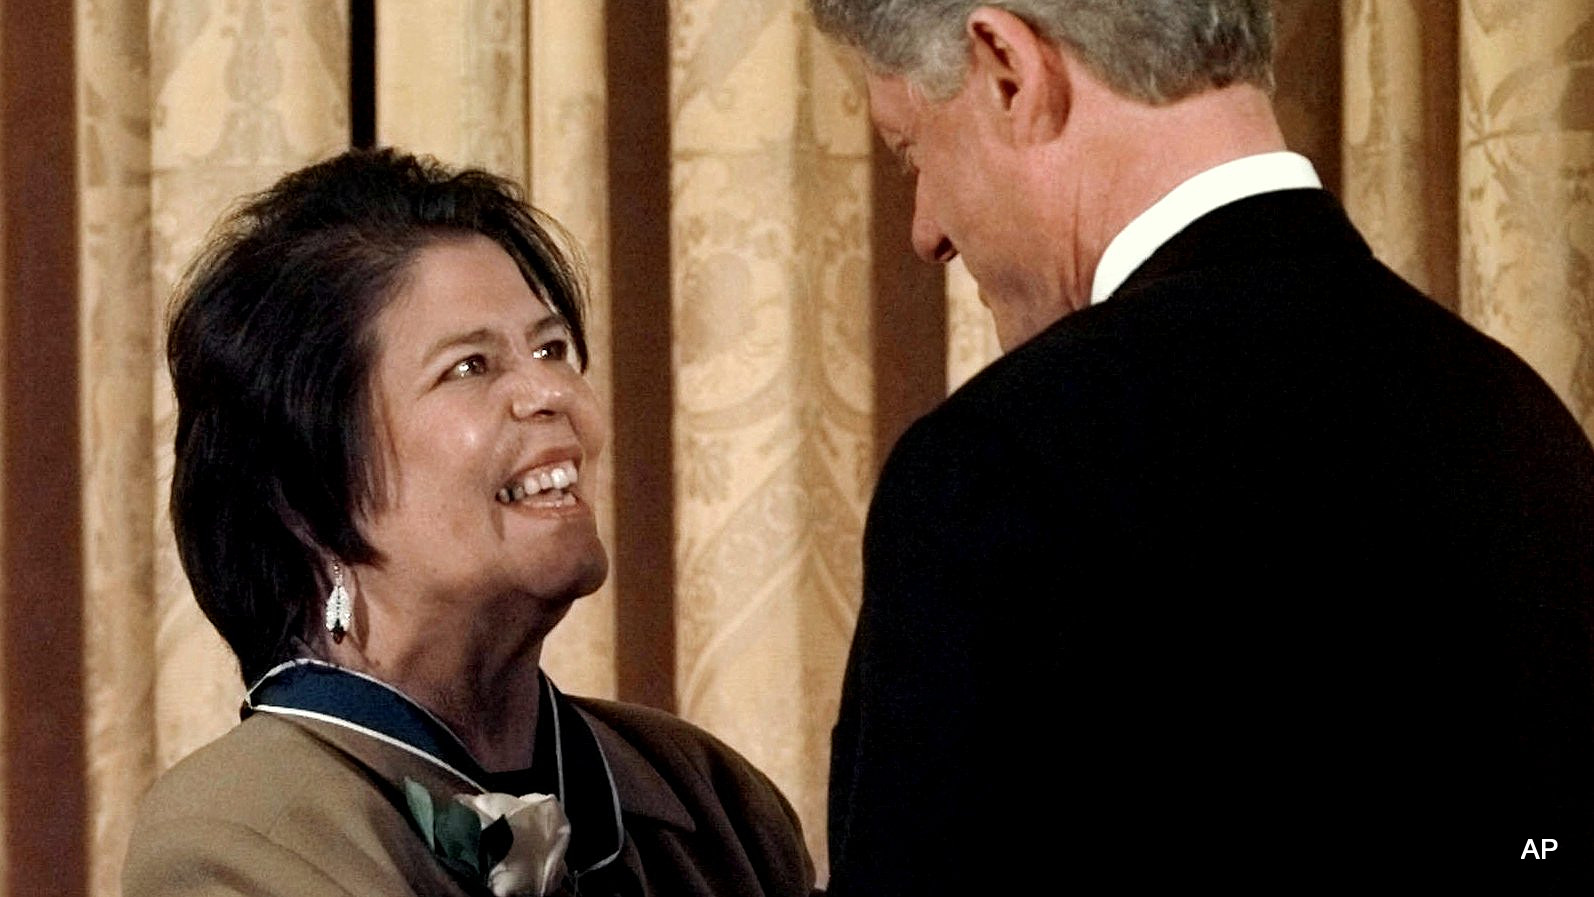 President Bill Clinton hugs former Cherokee Nation chief Wilma Mankiller after presenting her with a Presidential Medal of Freedom during a ceremony at the White House, Jan. 15, 1998 .